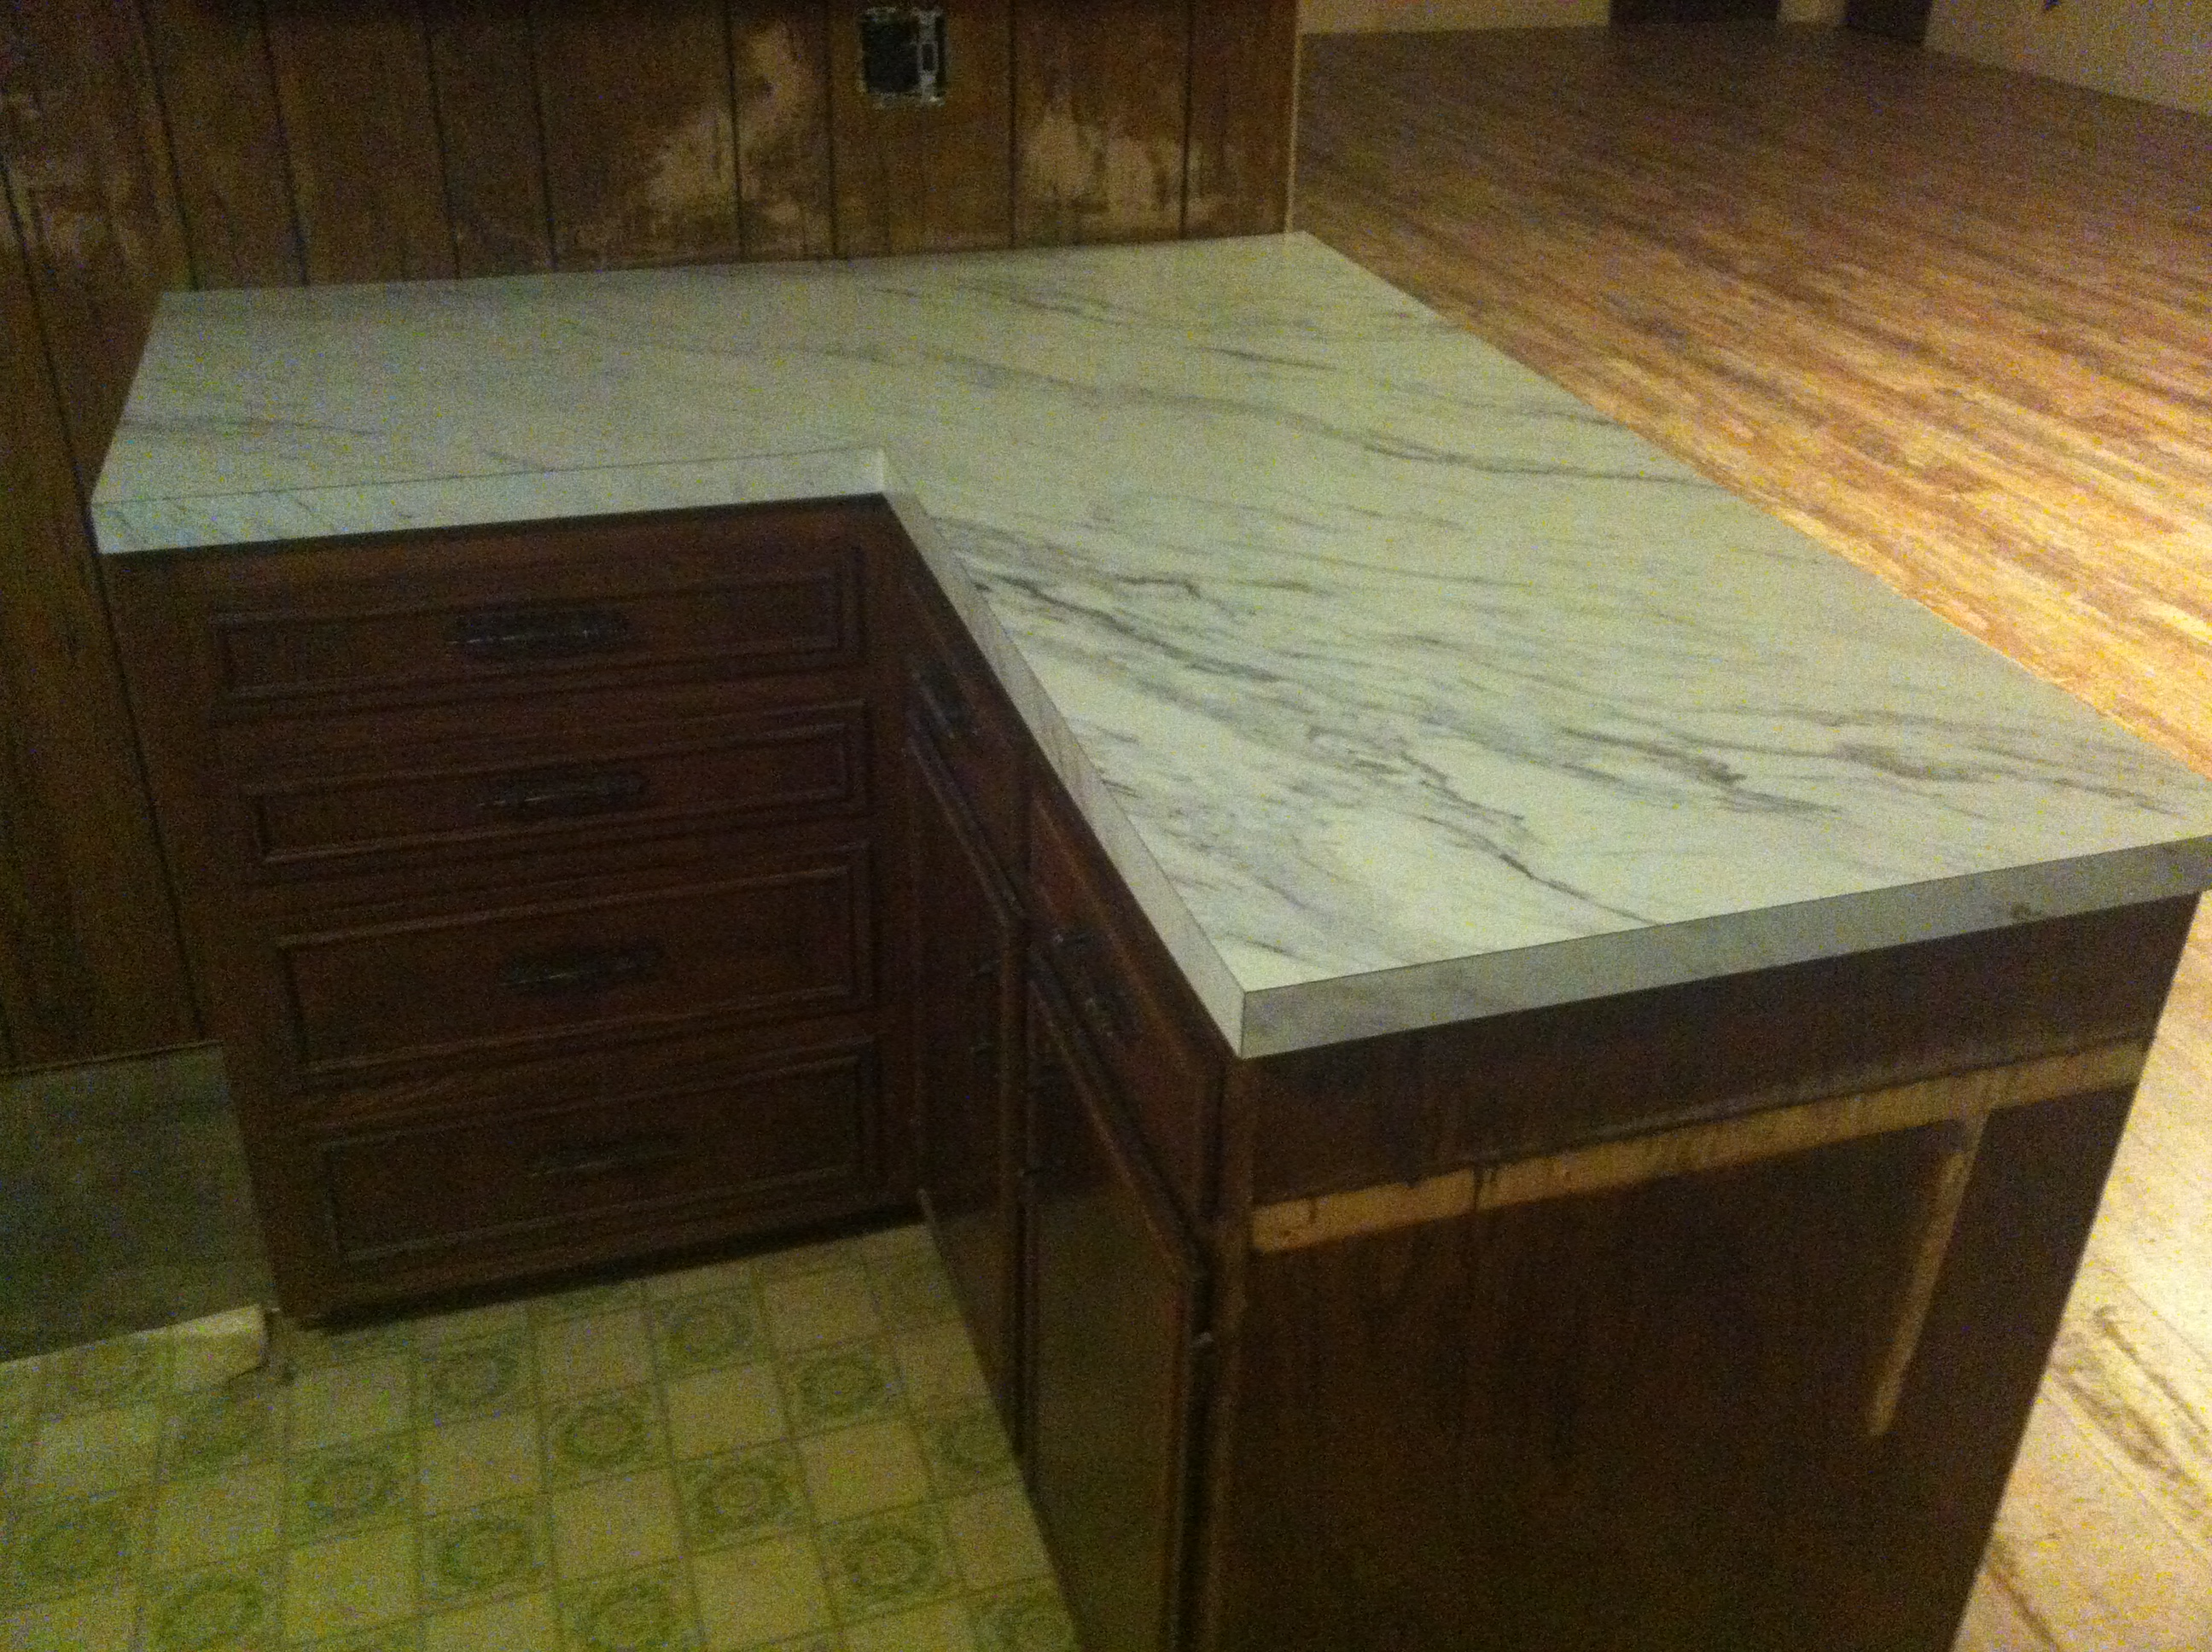 Calcutta Marble Laminate Countertop The New Countertops The Bachelorette Pad Flip